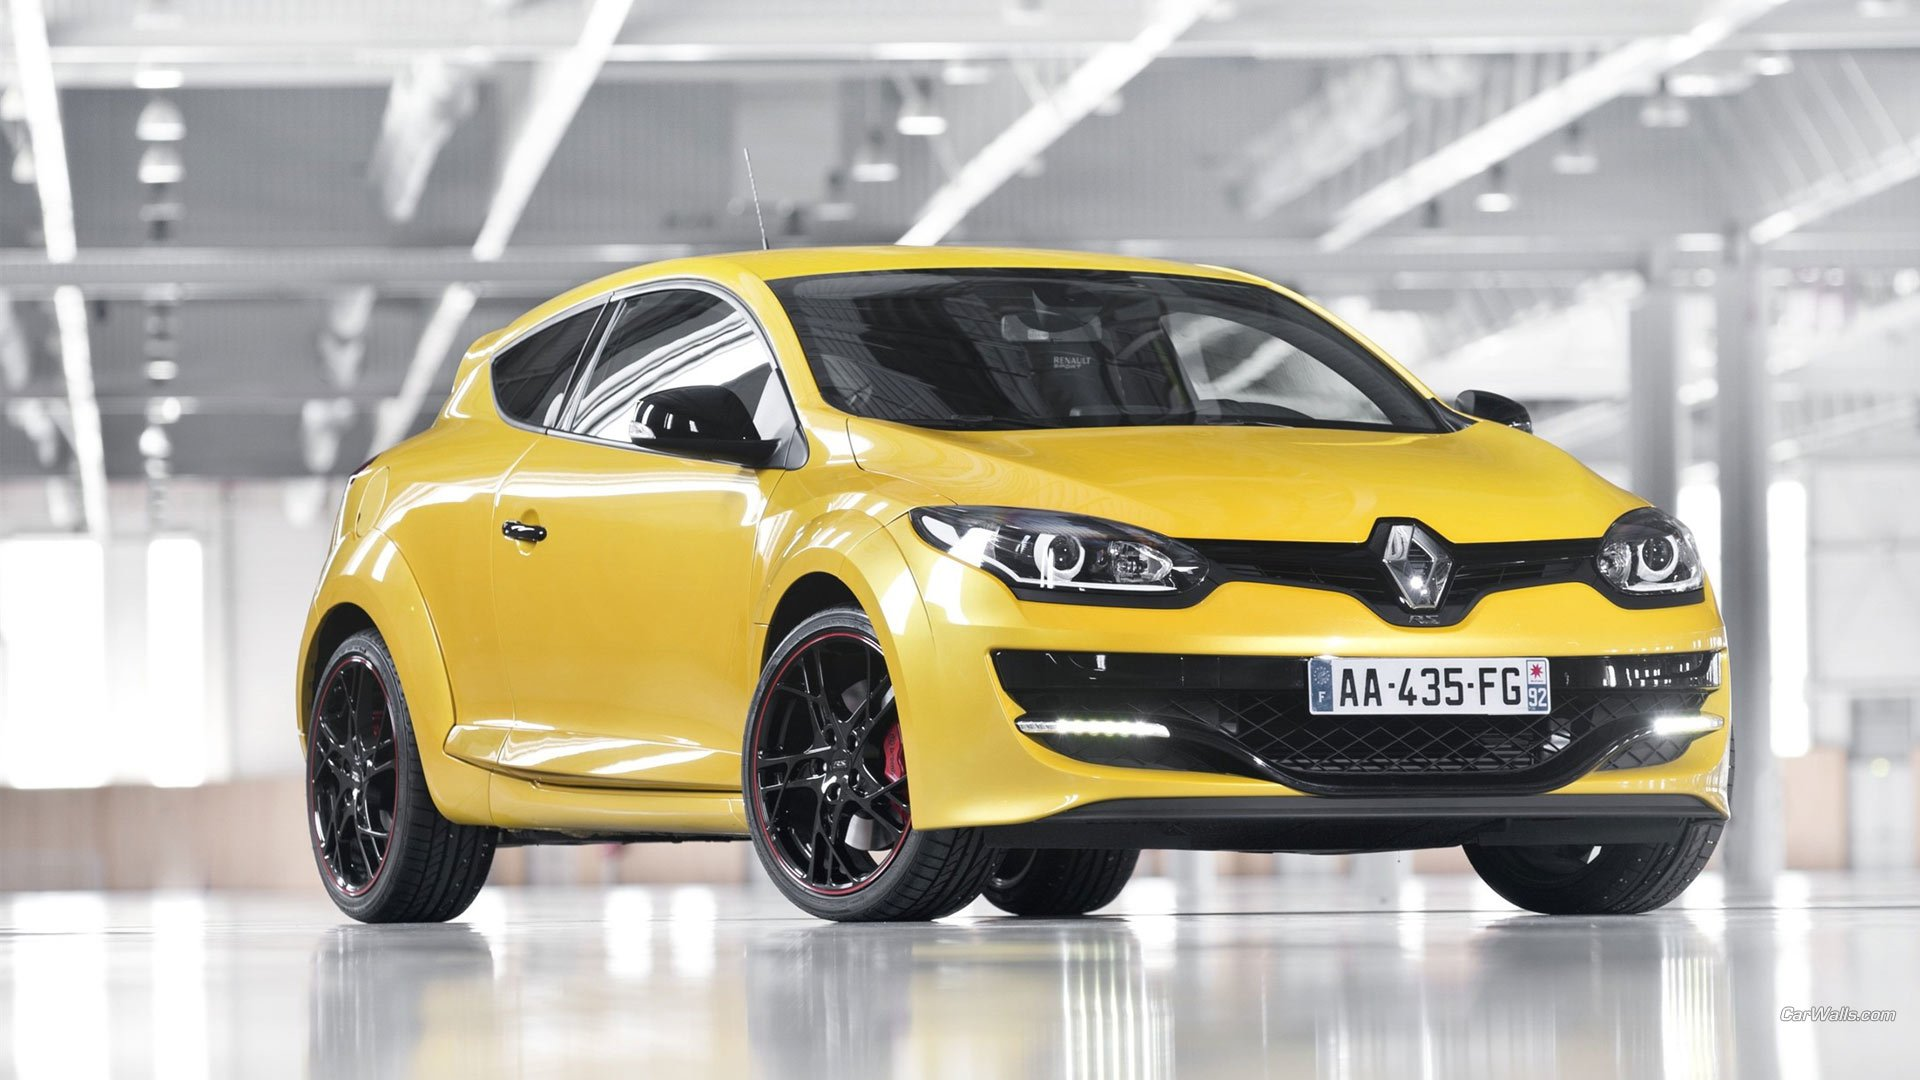 7 2014 Renault Megane Rs Hd Wallpapers Background Images Wallpaper Abyss